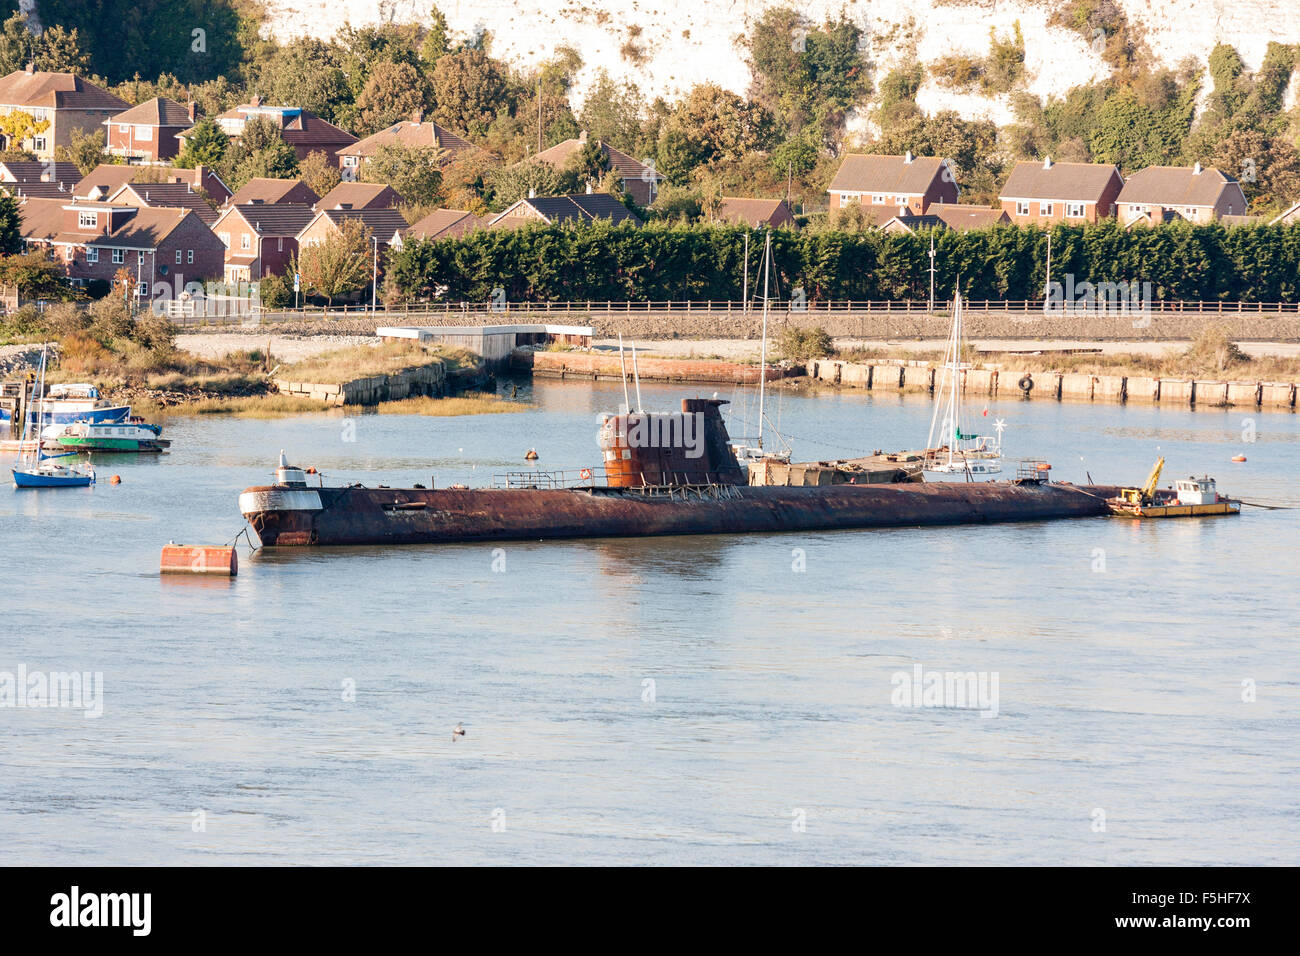 Rochester. Rusting Russian submarine, U-475 Black Widow, a Soviet Project 641 class, or NATO name, Foxtrot, moored - Stock Image